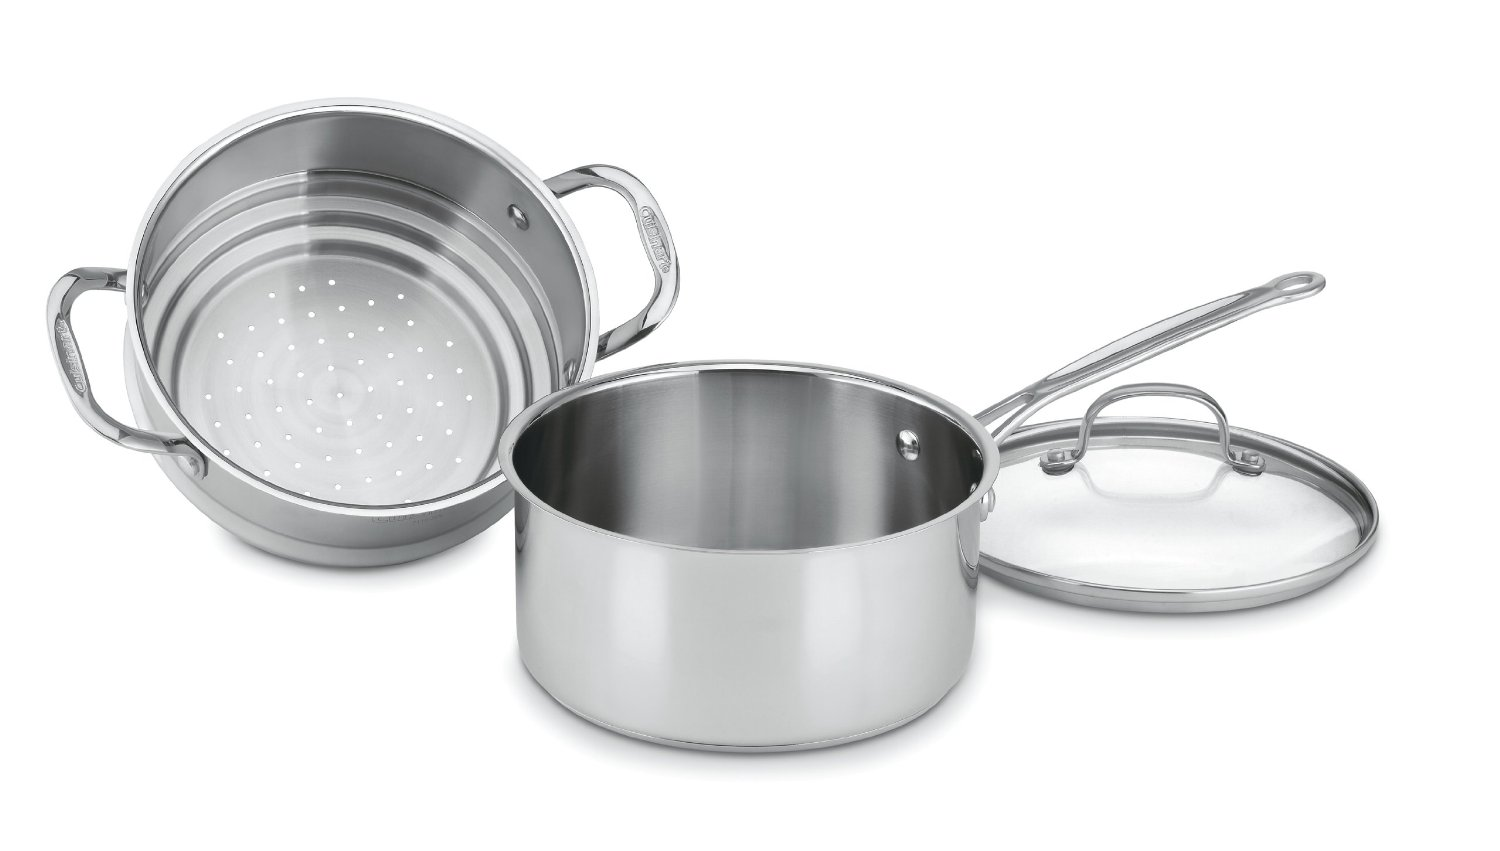 how to clean burned cuisinart stainless steel pans